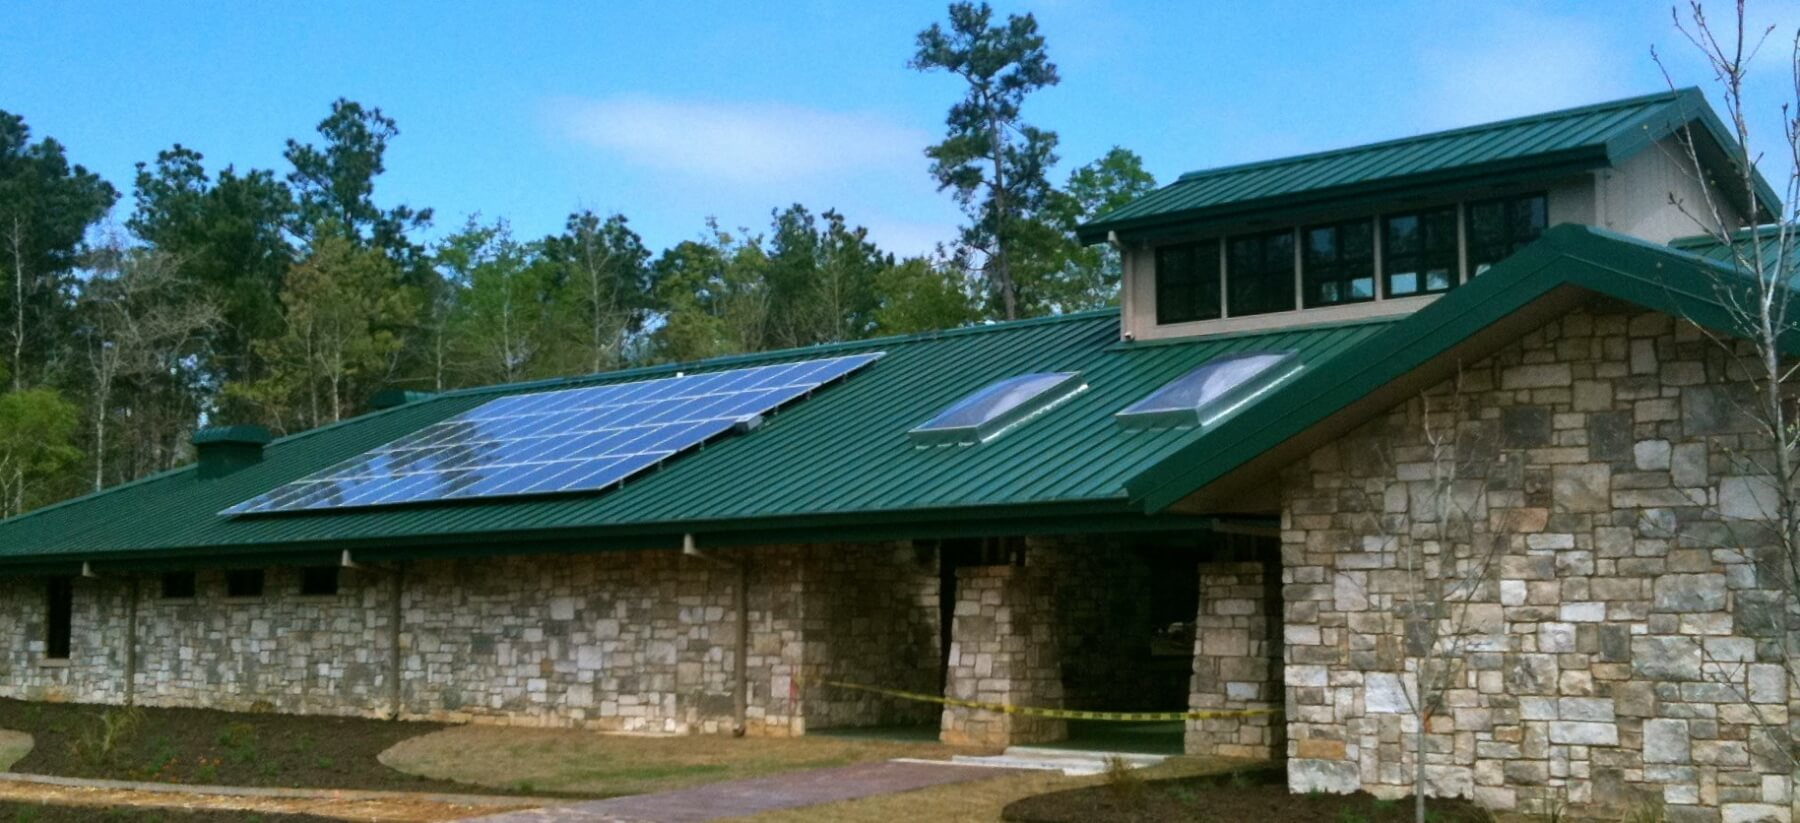 green roof with solar panels installed